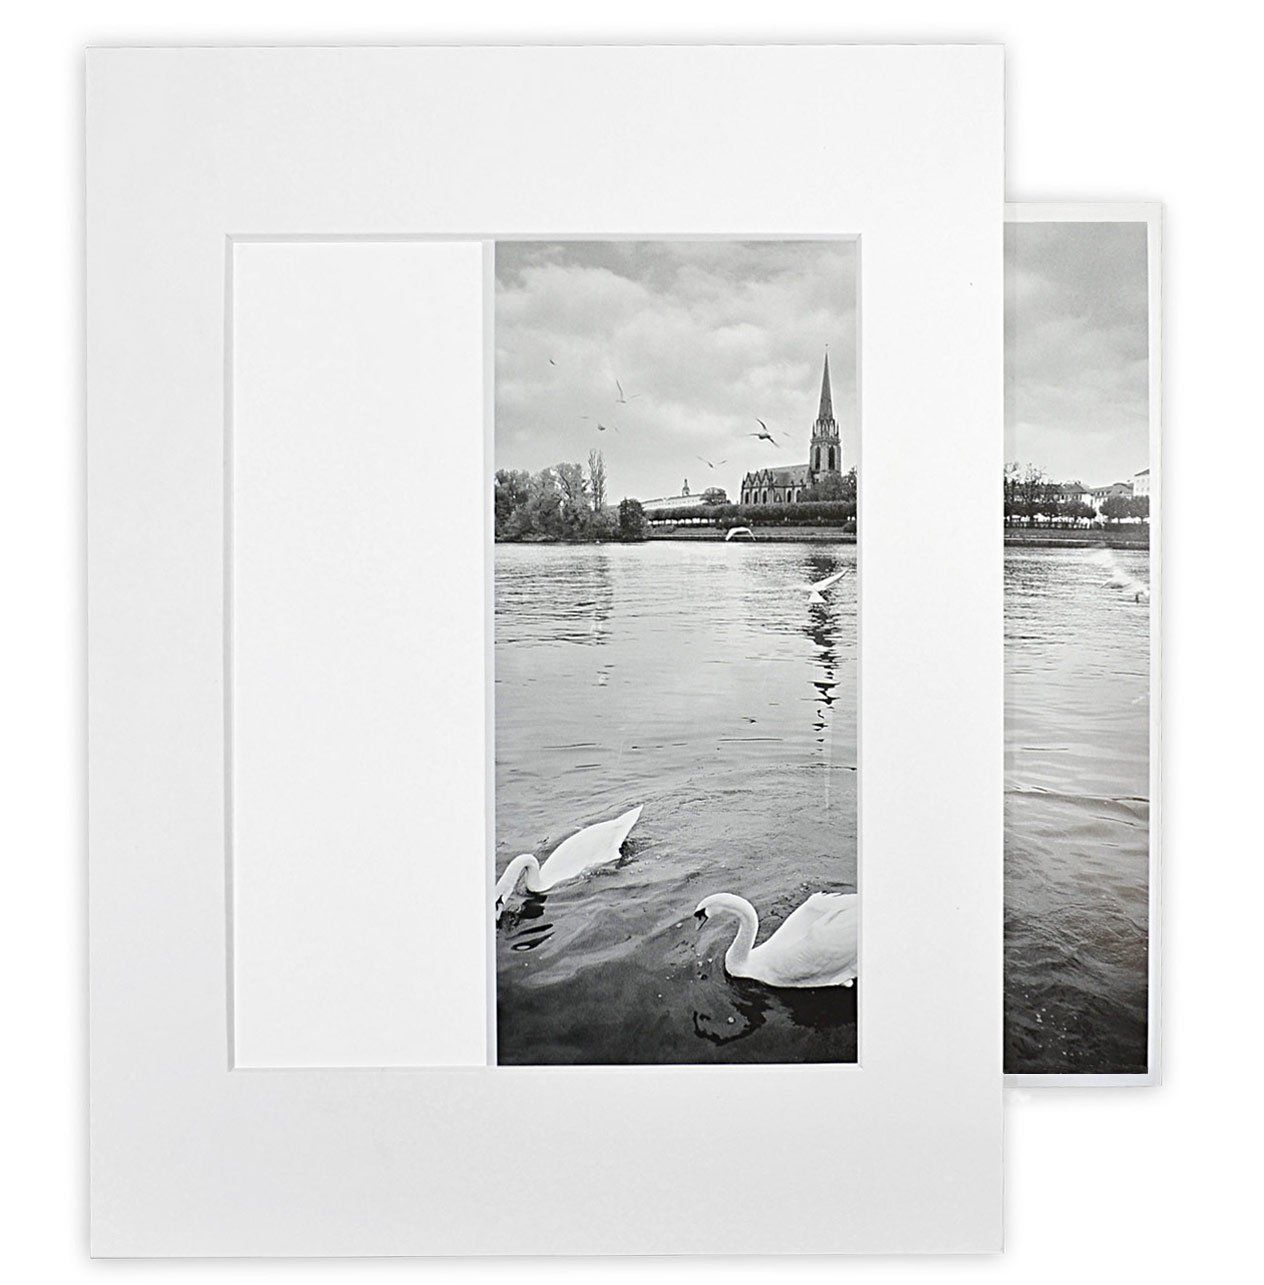 Golden State Art, Pack of 25 White 11x14 Self-Assemble Photo Mat for 8x10 Picture with Backing Board pre-gummed, Includes 25 Clear Bags